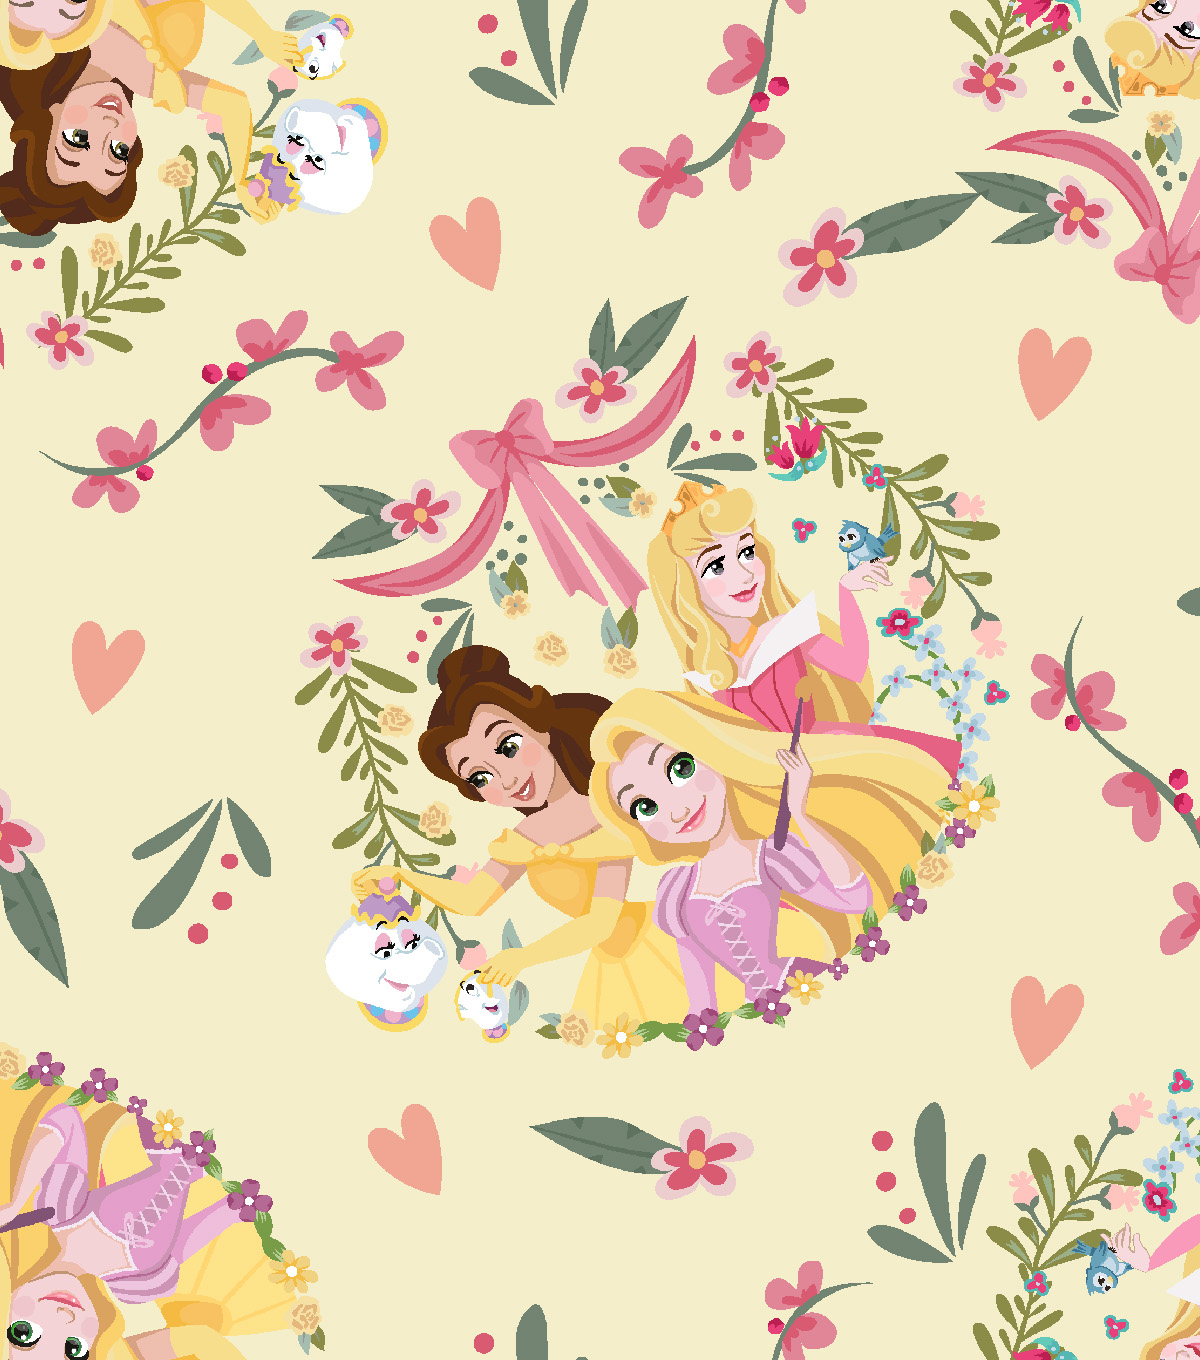 Disney Princess Knit Fabric 58\'\'-Princess Friends | JOANN